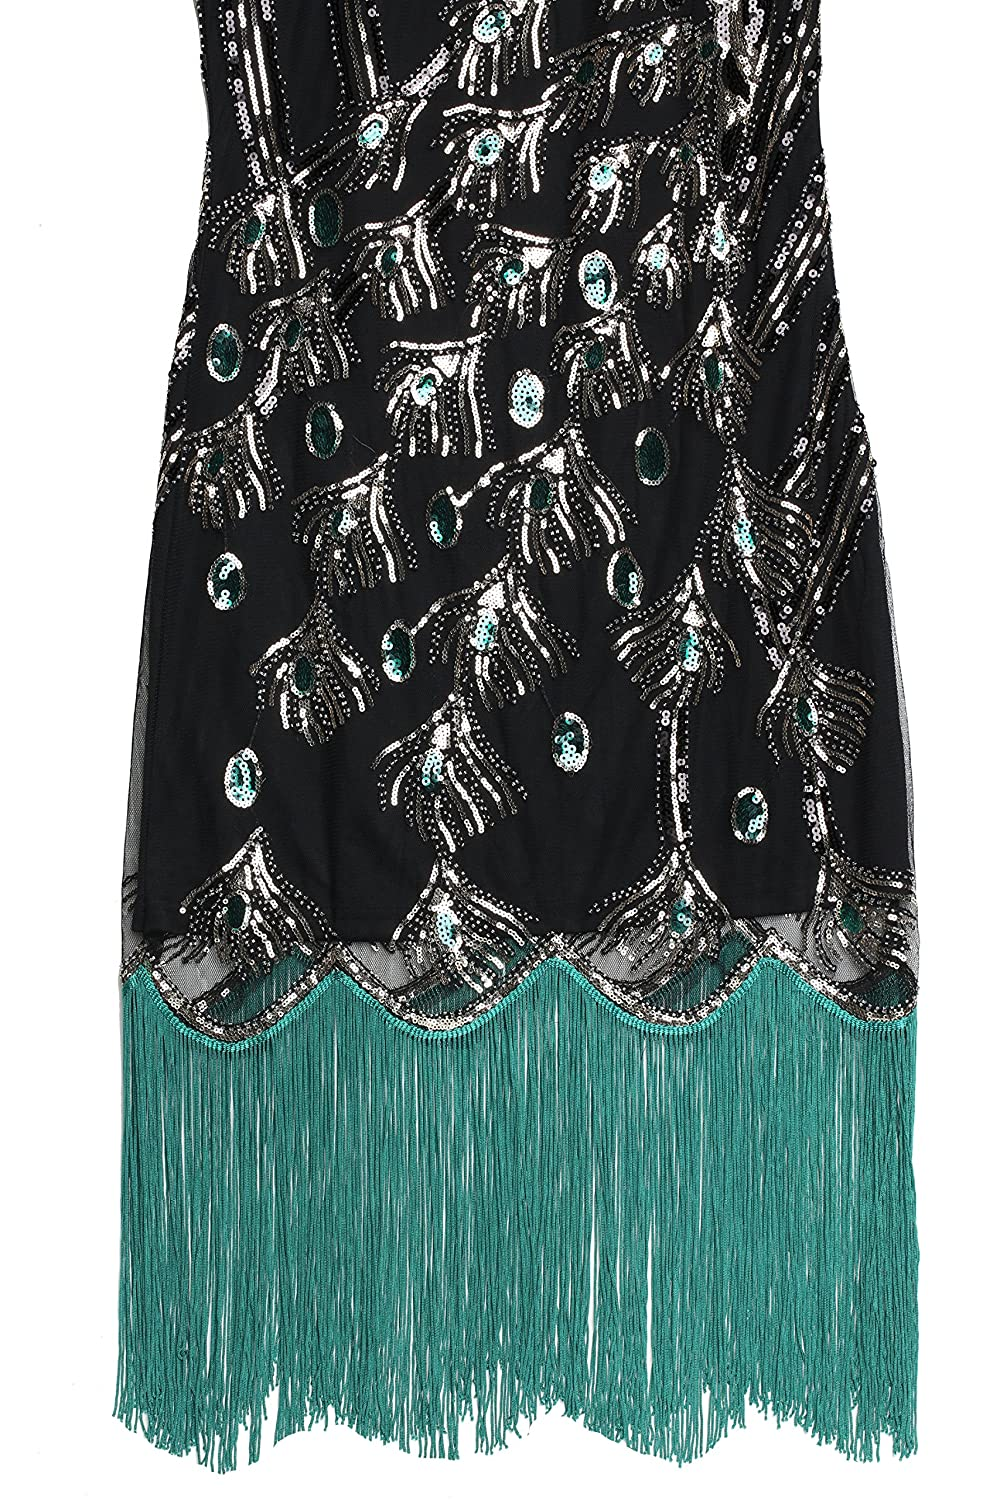 BABEYOND 1920 Vintage Peacock Sequin Fringed Party Flapper Dress ...